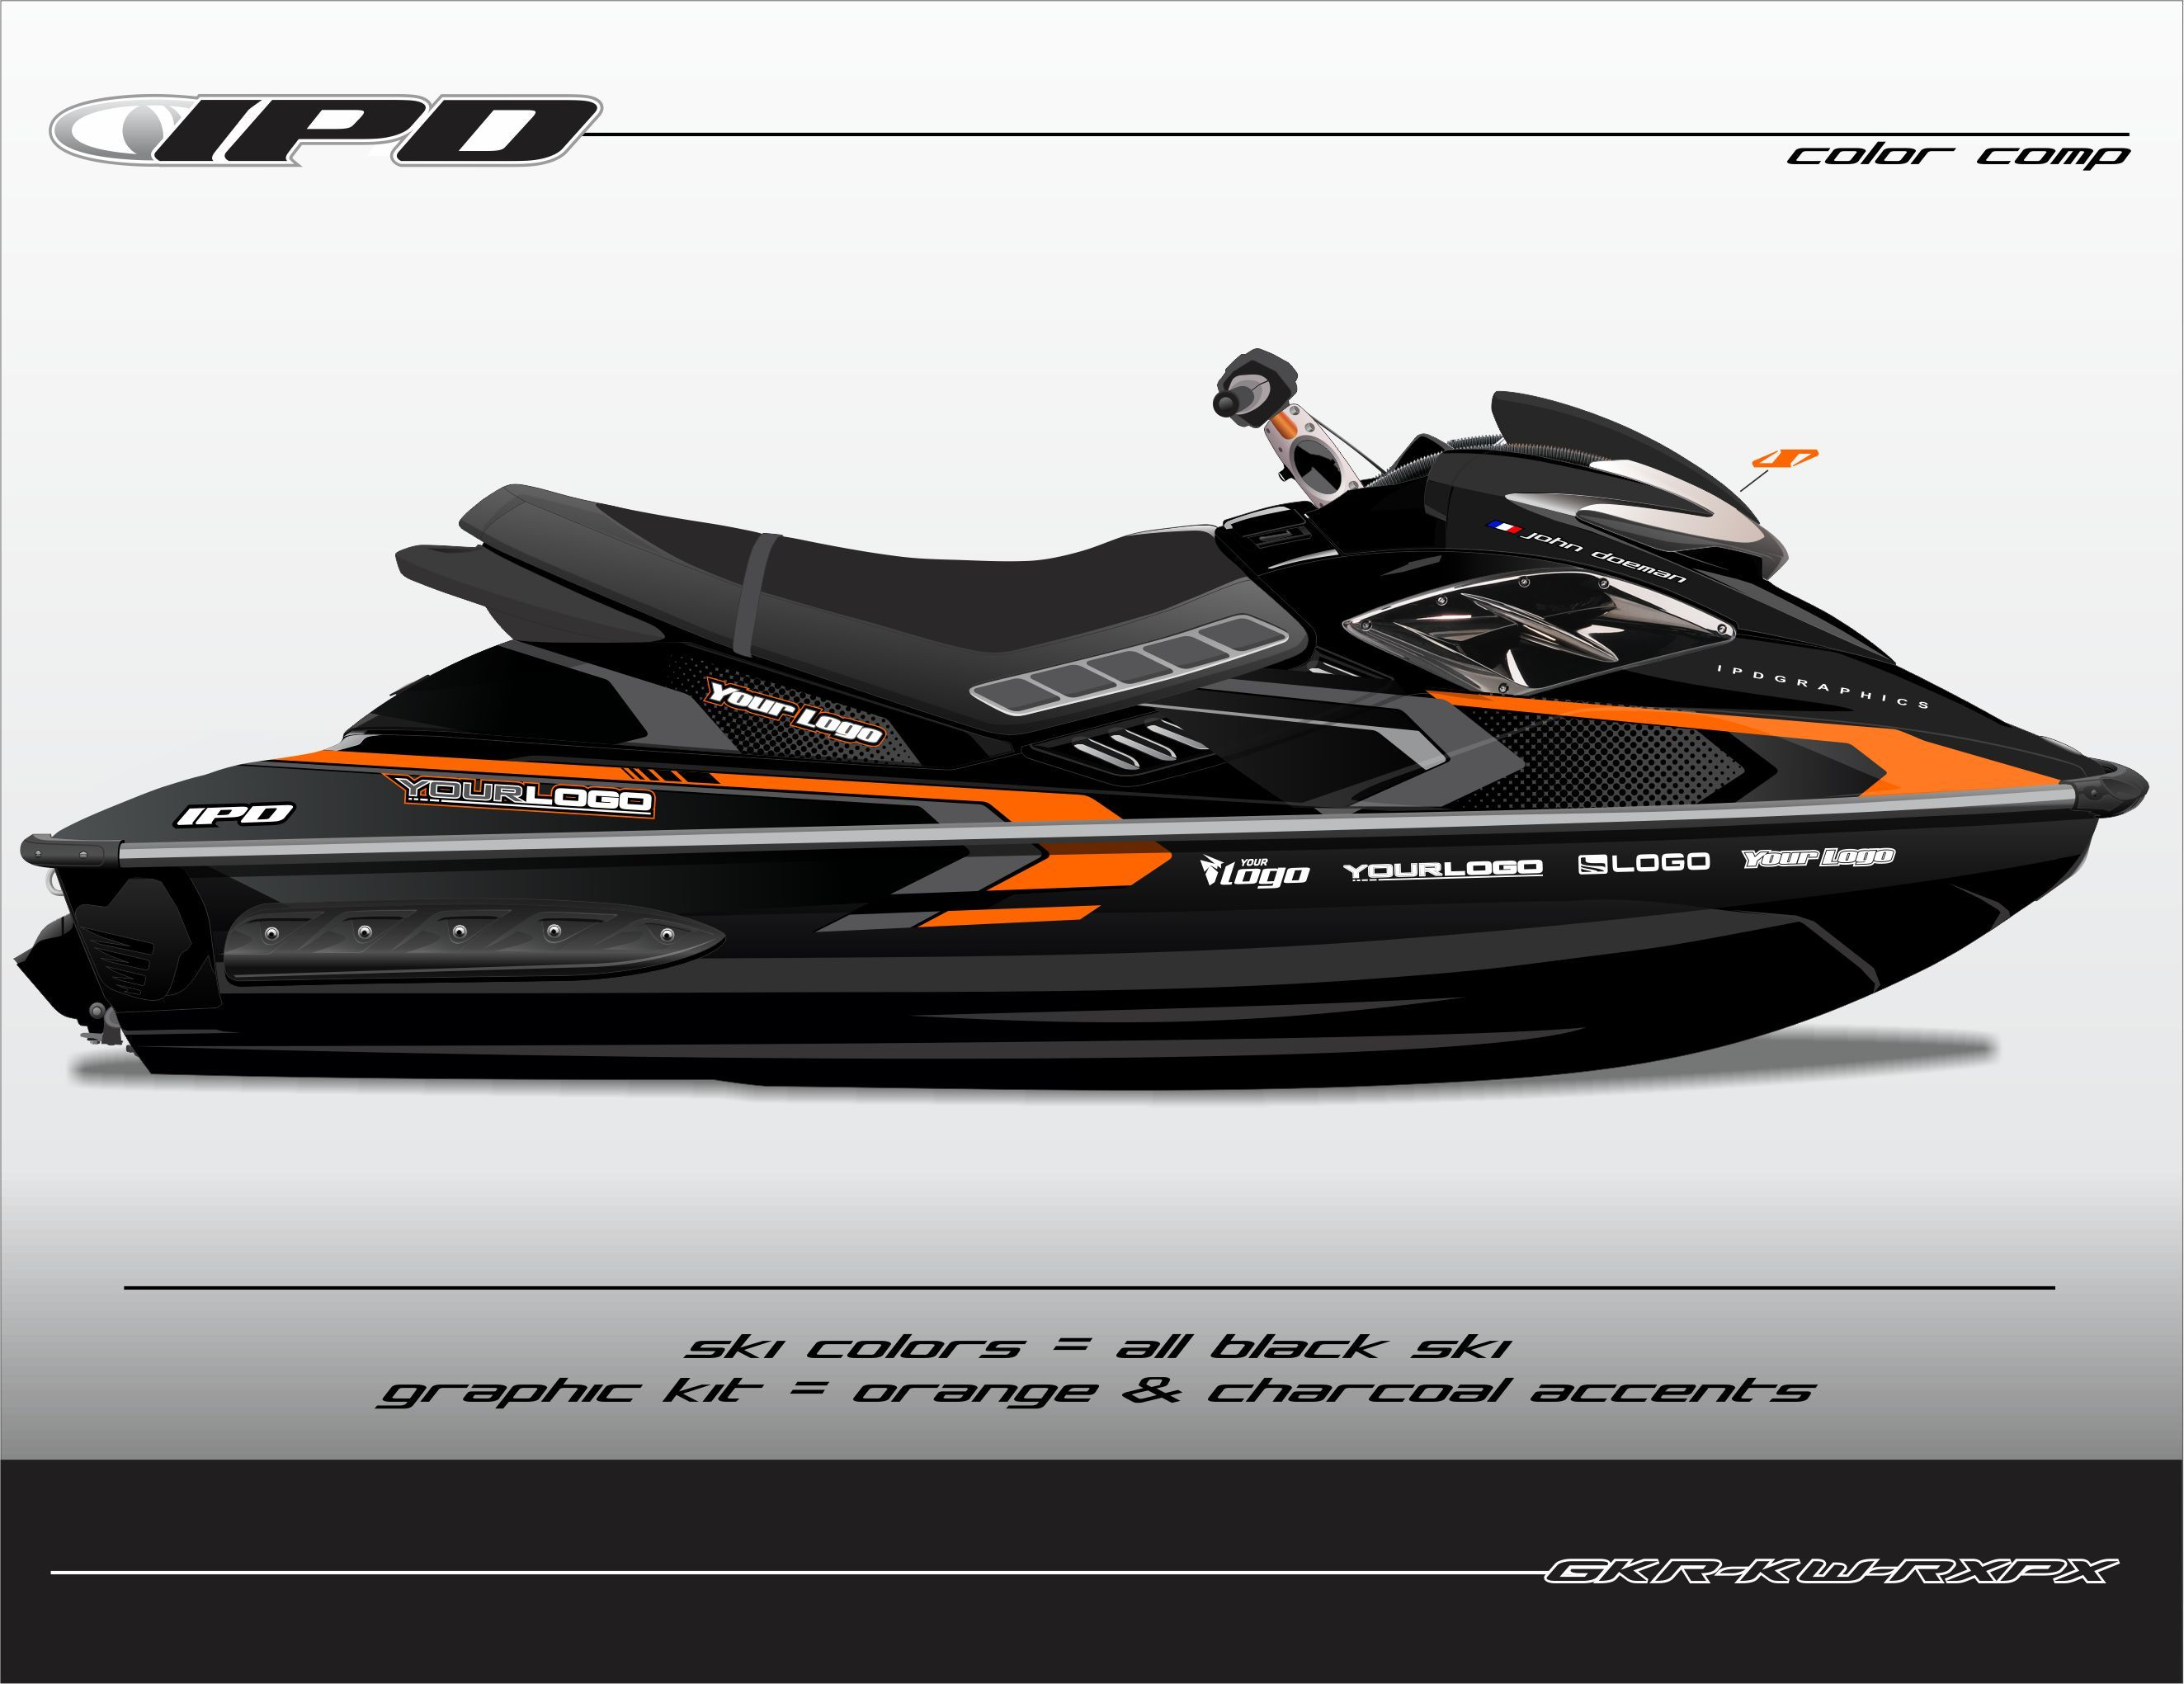 Sea-Doo Gen-1 RX, RXP, RXP-X Rec Graphics Kit (KW Design